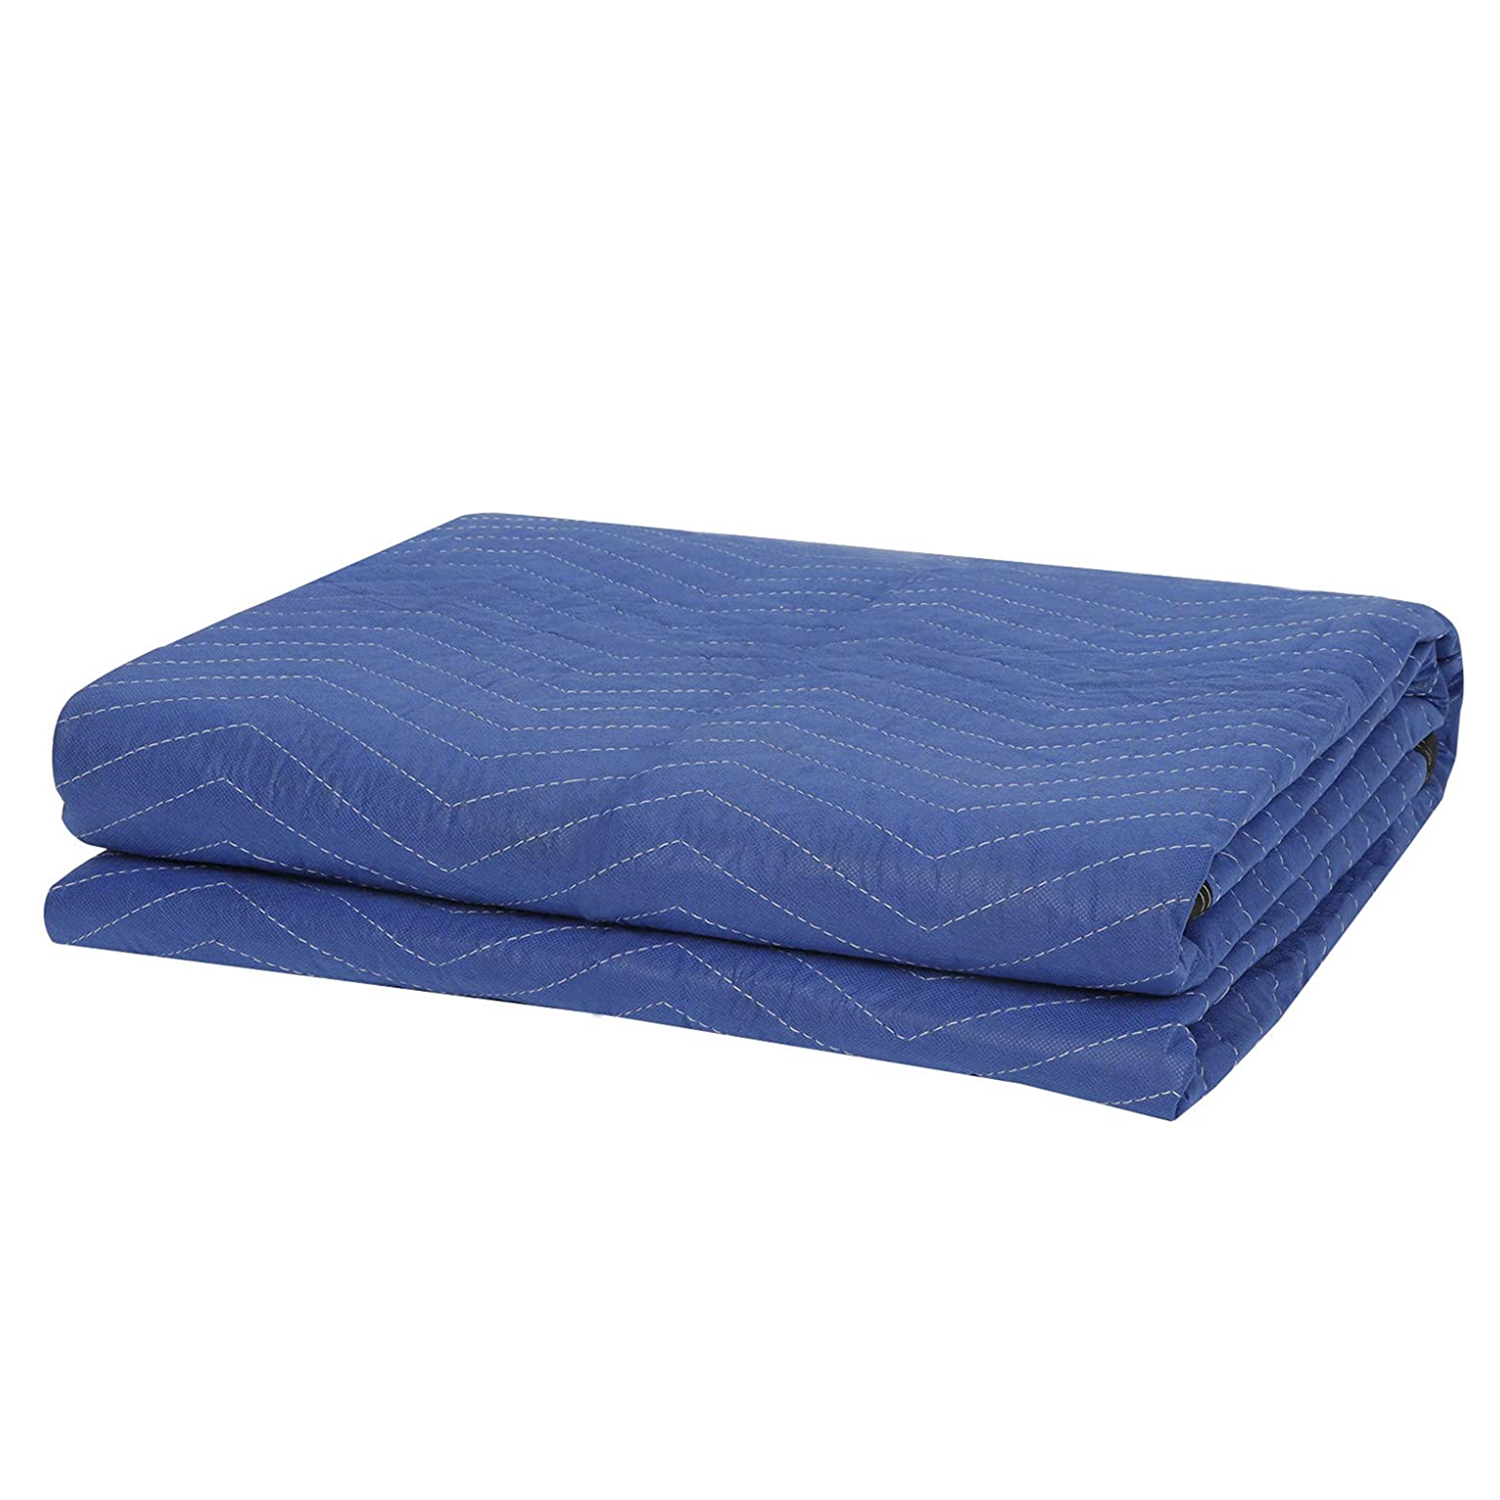 Oshion 12-Pack 80 x 72 inch Moving Blankets, Heavy Duty Moving Pads for Protecting Furniture, Professional Quilted Shipping Furniture Pads, Blue